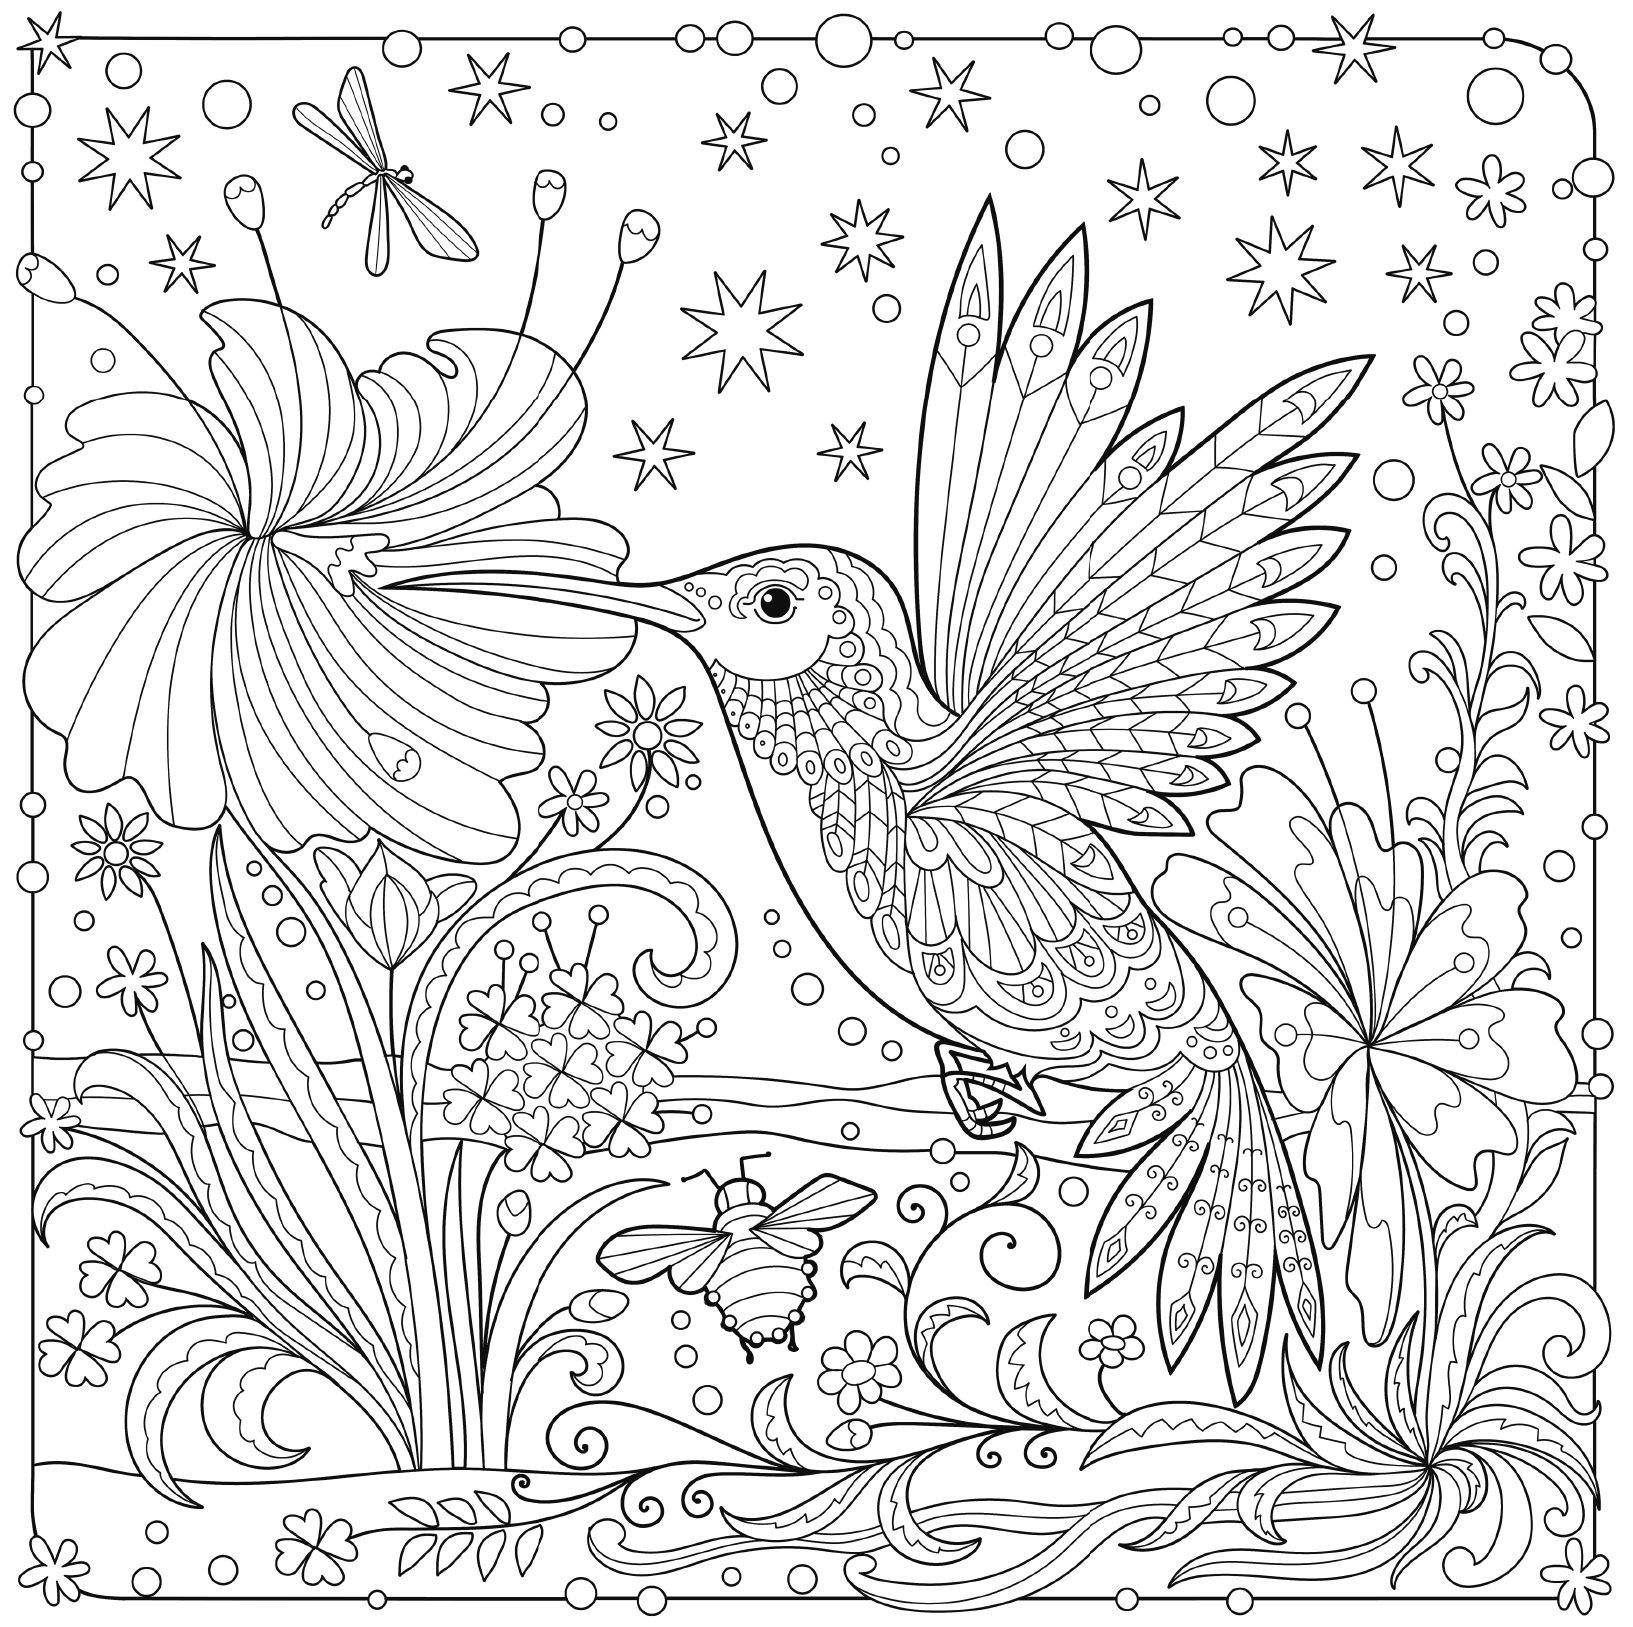 hummingbird colouring page Animal